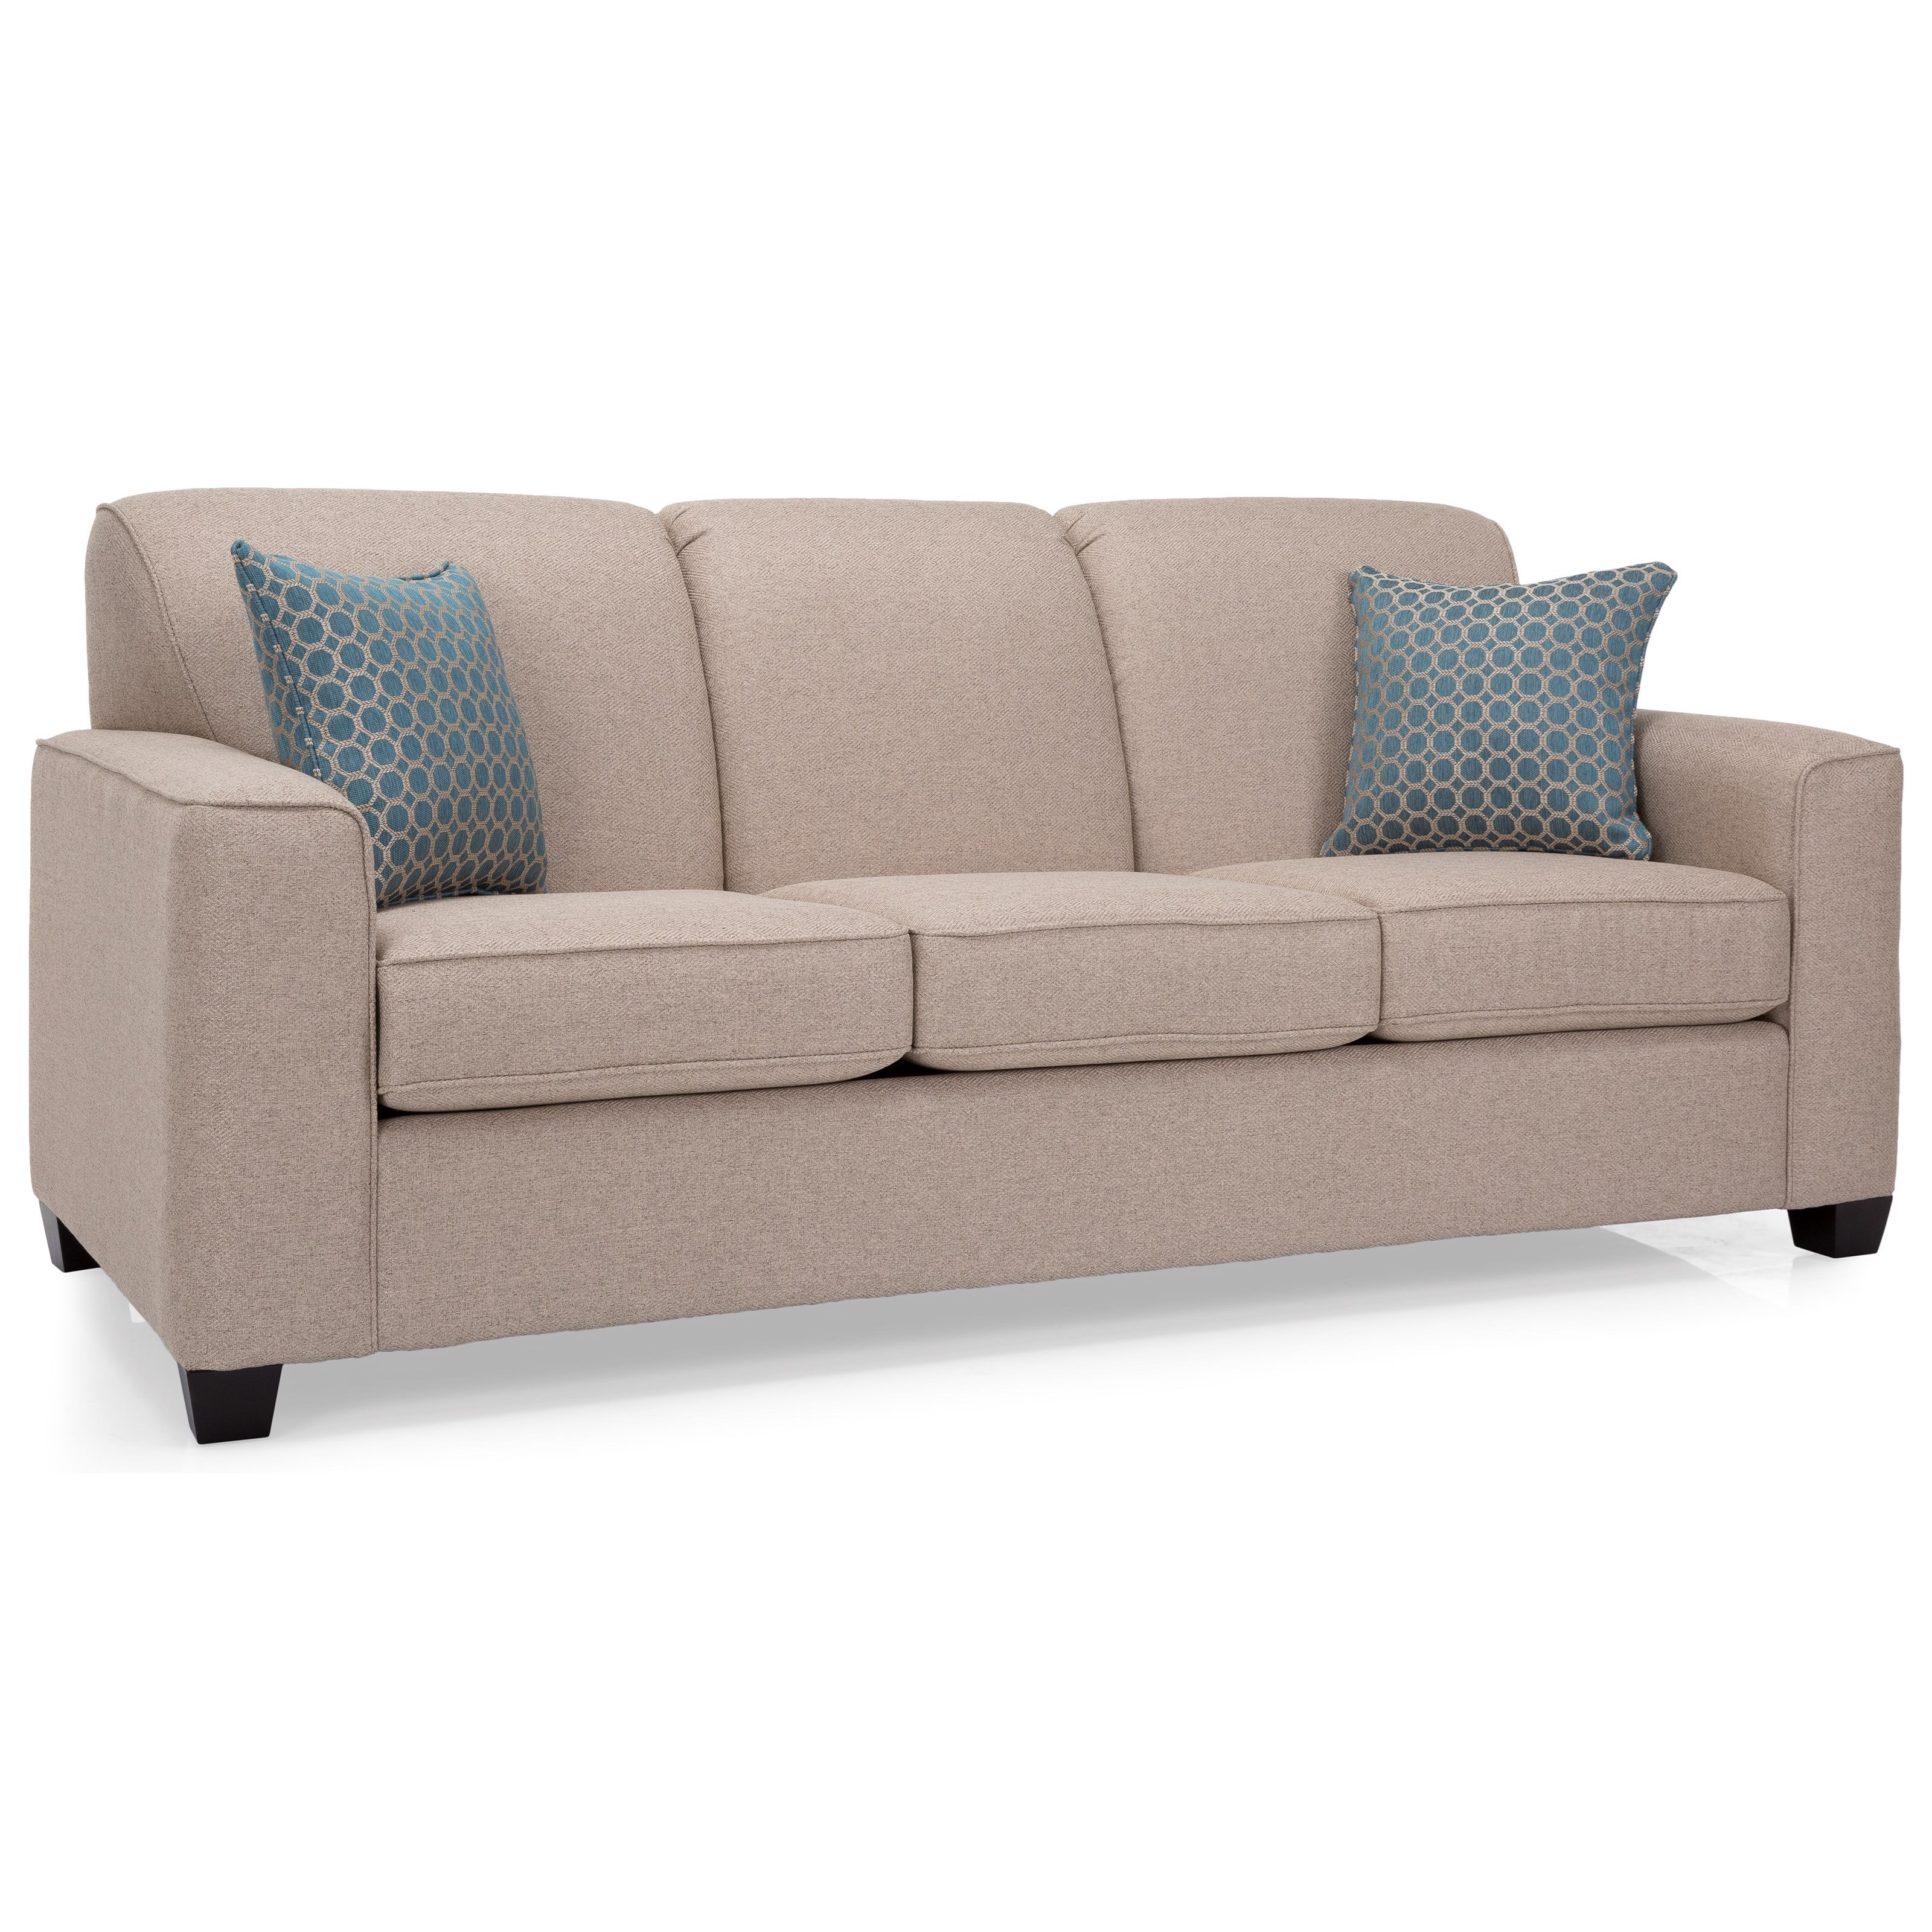 Decor-Rest 2705 Sofa - Item Number: 2705 SOFA-TAN